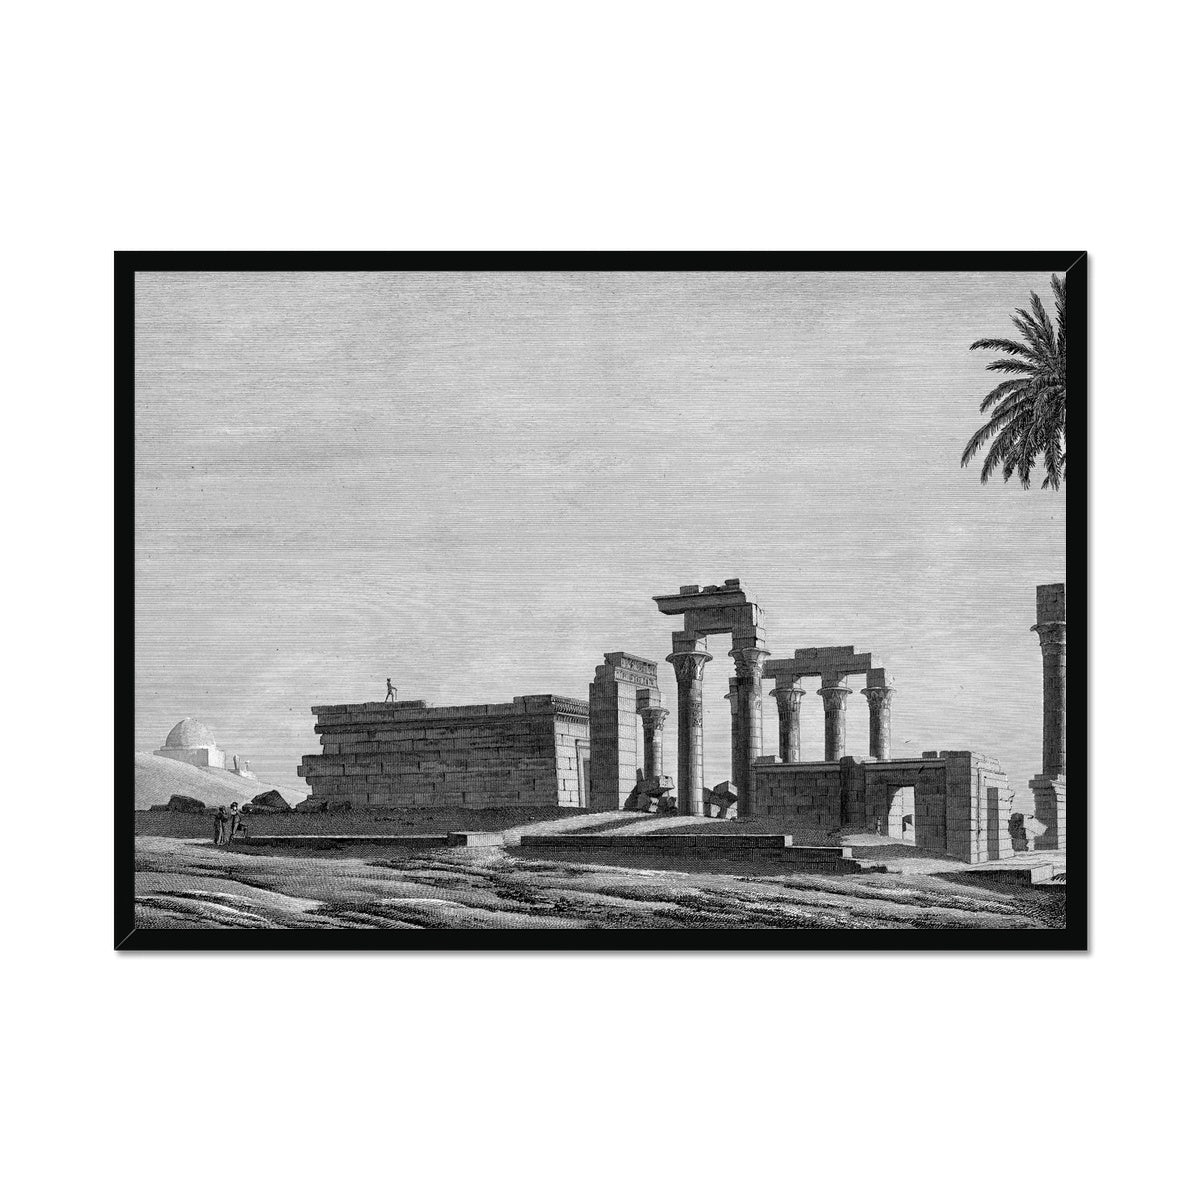 The Temple of Hermonthis Ruins 1 - Armant Egypt -  Framed Print